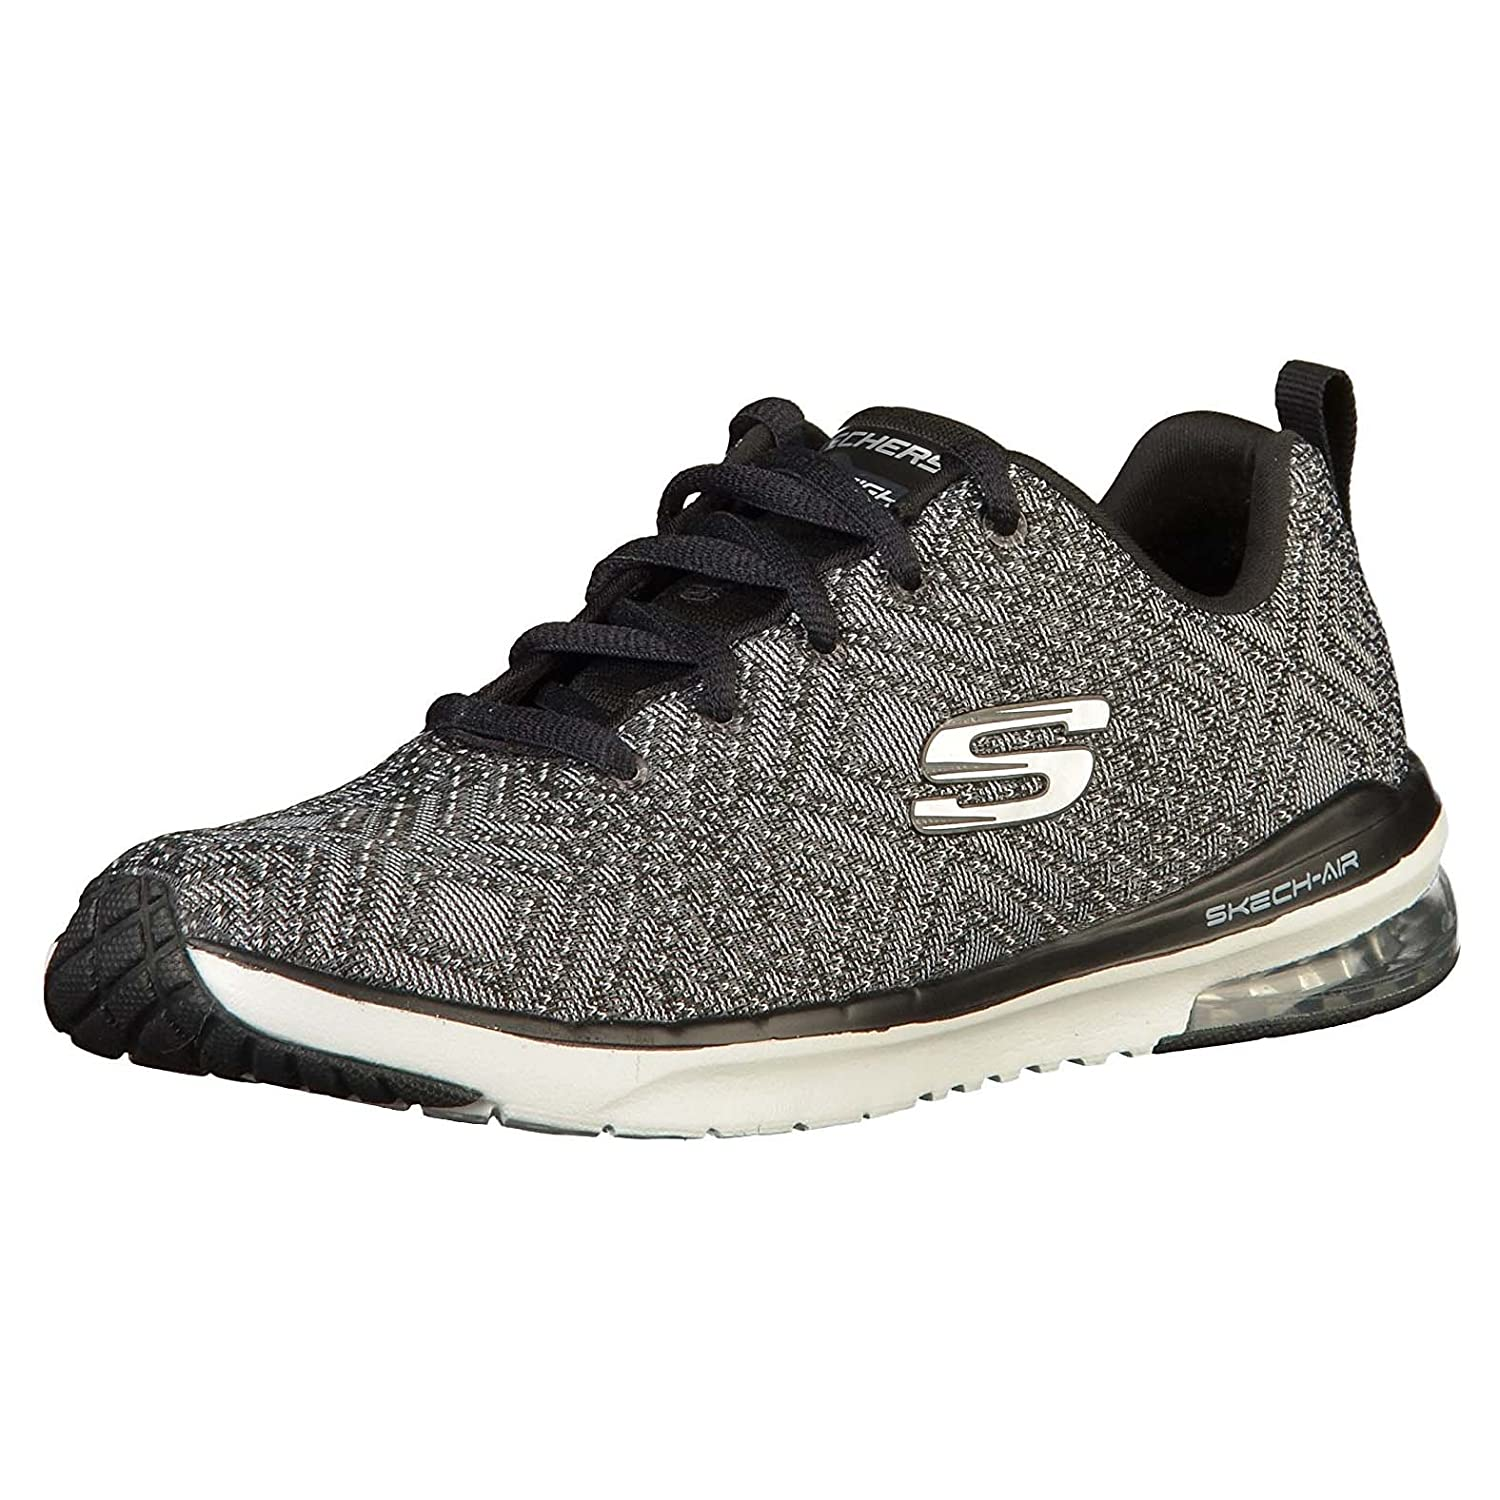 Skechers Skech-Air Infinity-All Aglow, Zapatillas para Mujer 37 EU|Negro (Black/White Bkw)